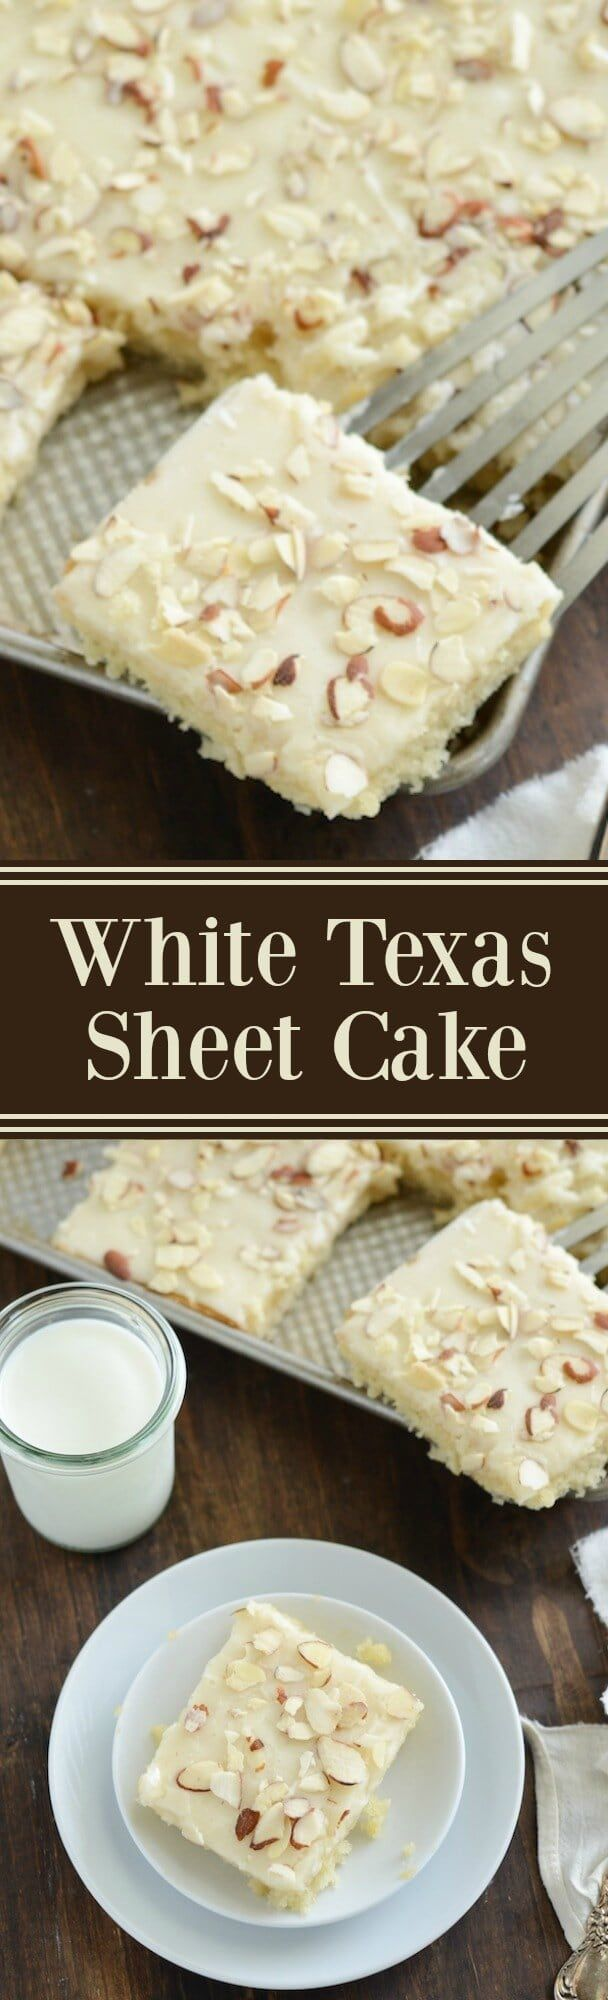 White Texas Almond Sheet Cake! This perfect buttery cake only takes 30 minutes from start to finish!